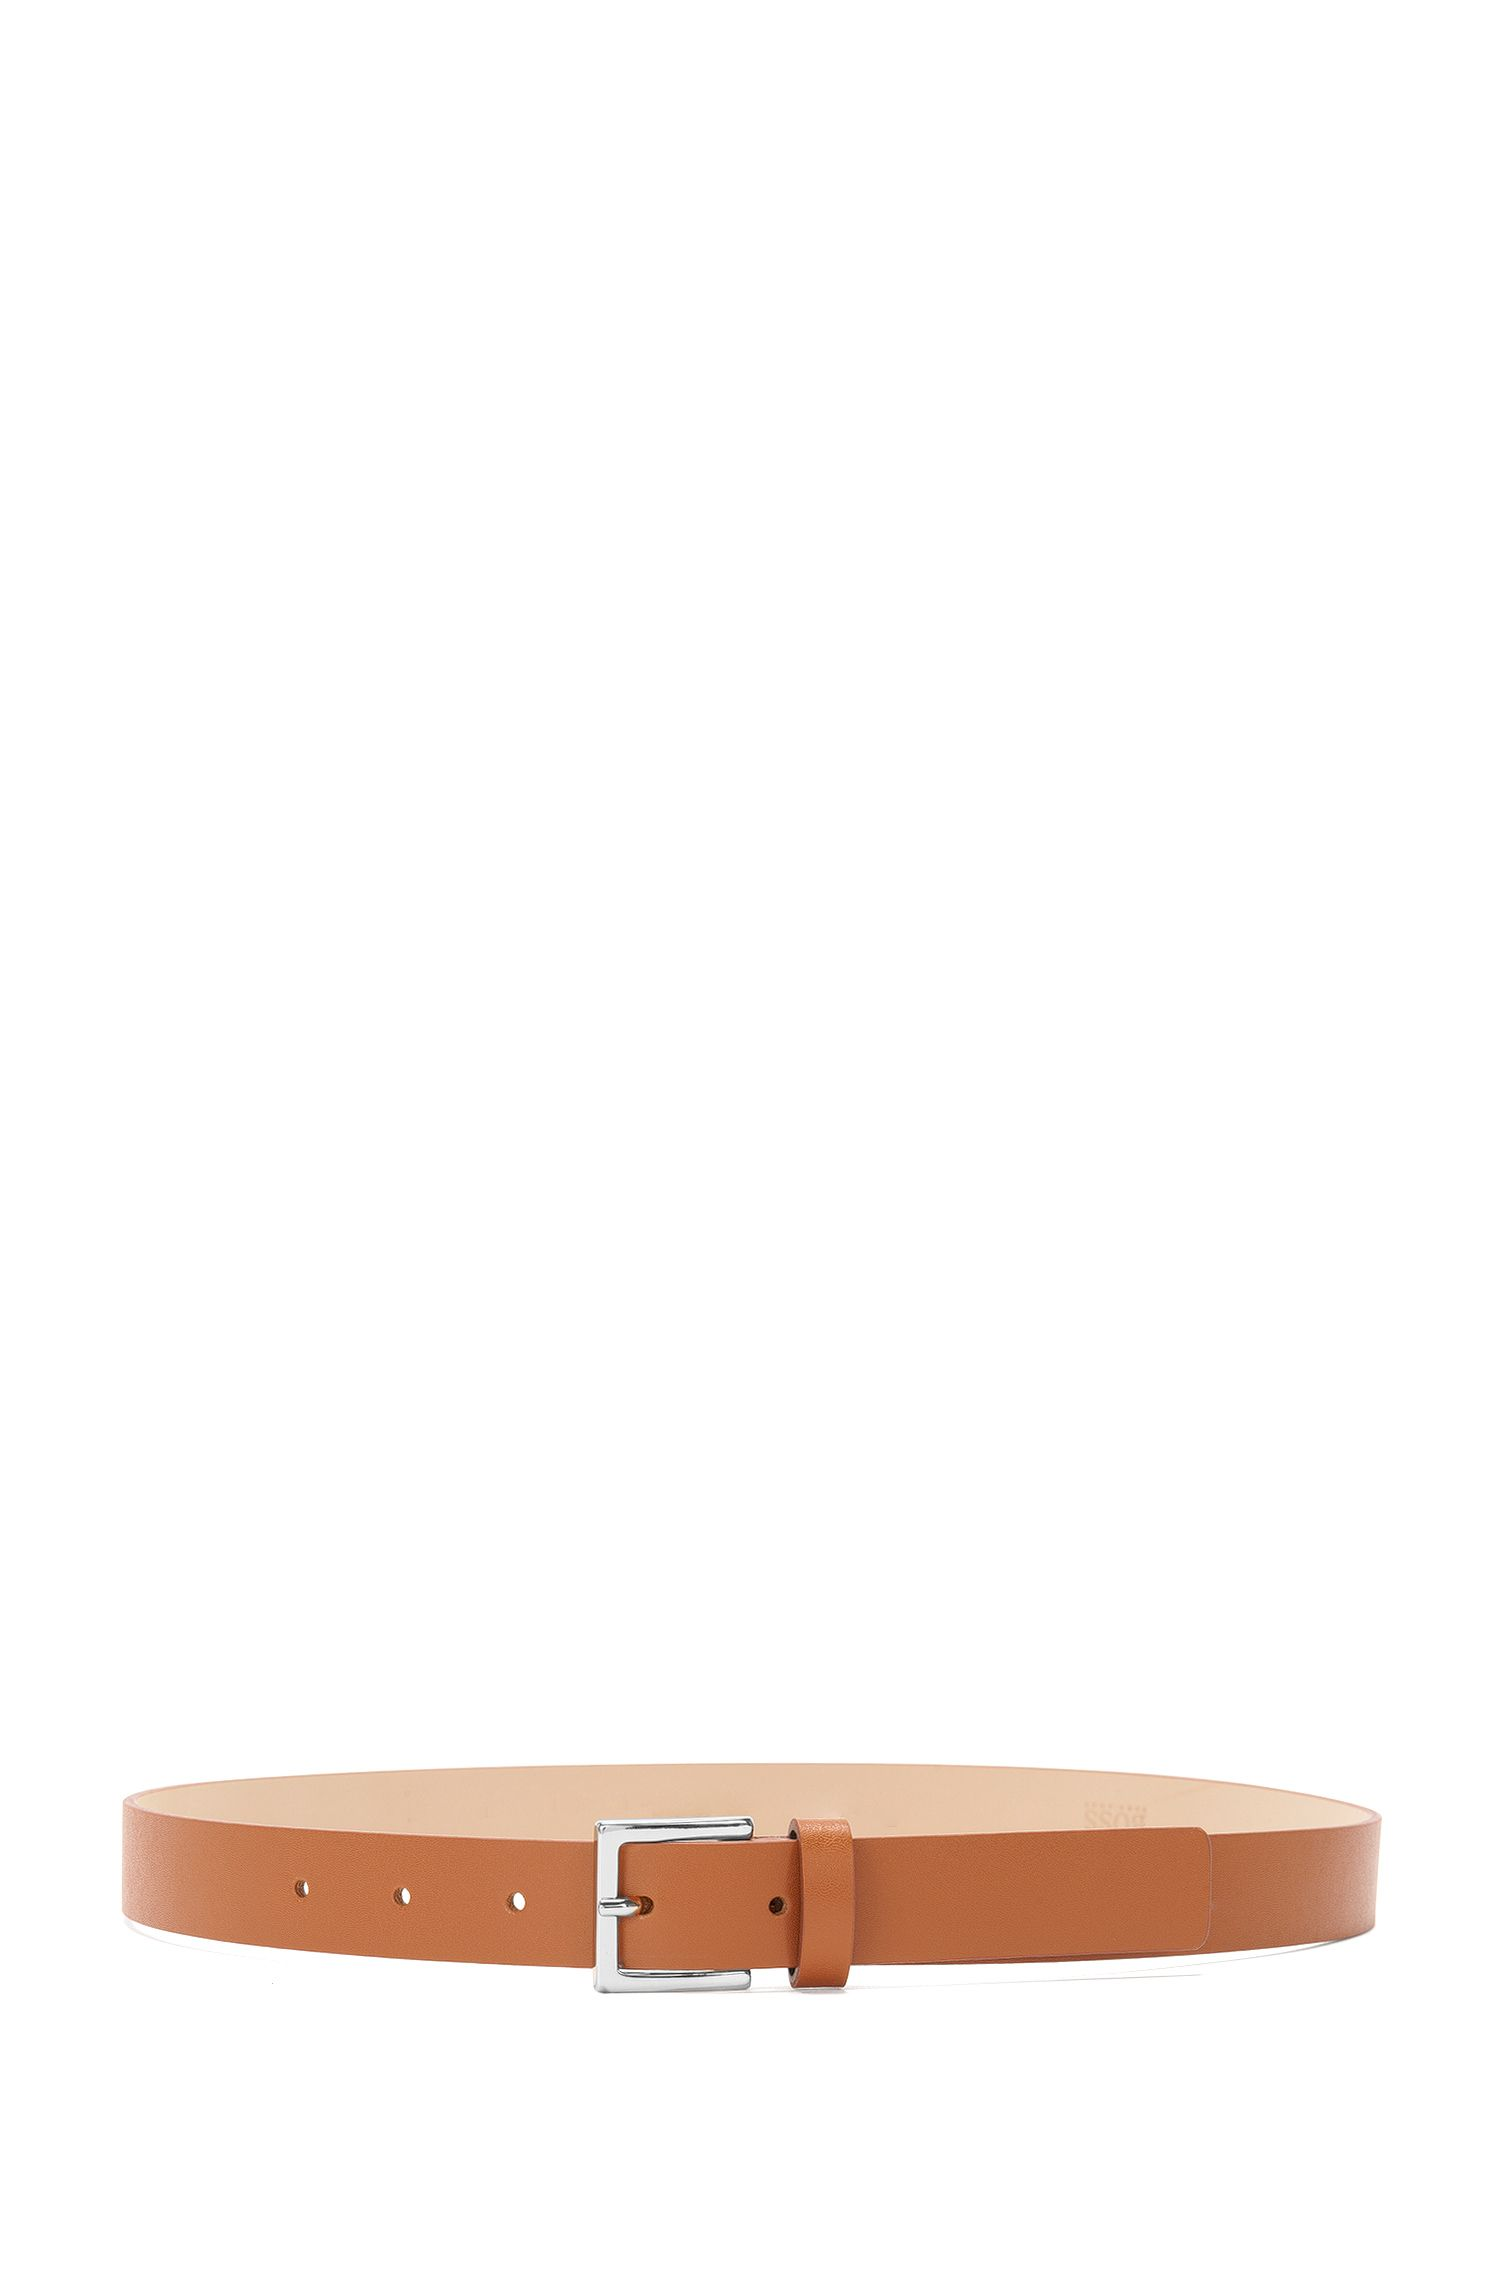 Leather Skinny Belt | Brede